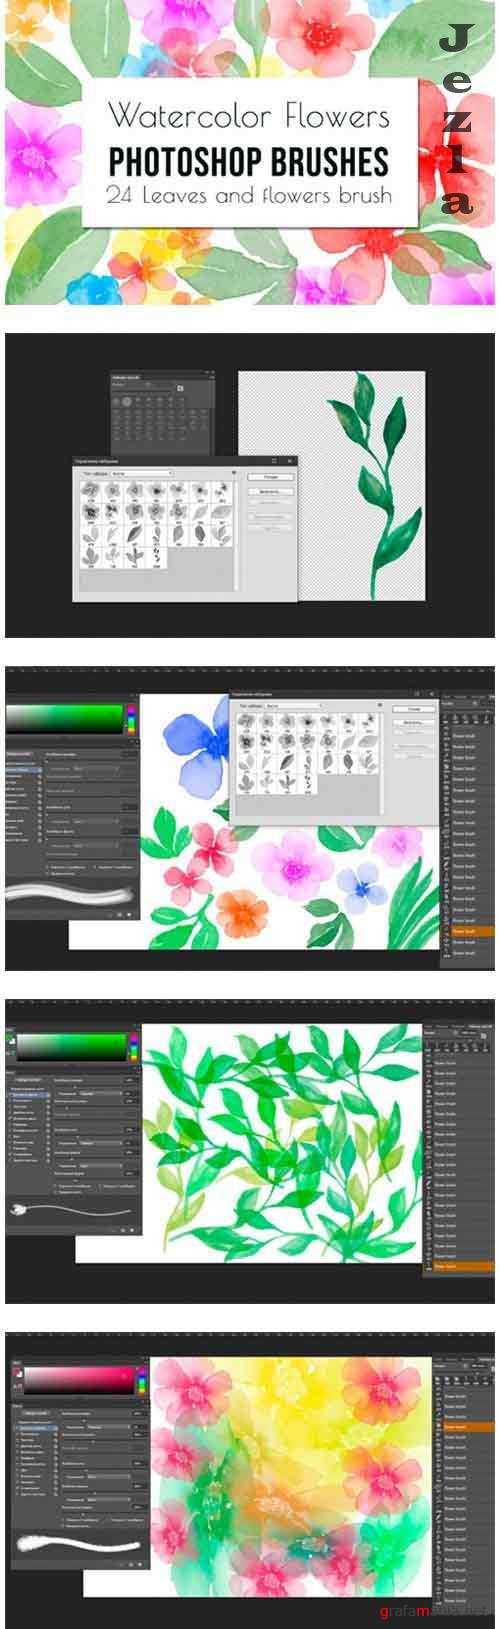 Flowers and leaves Photoshop Brushes - 1202019